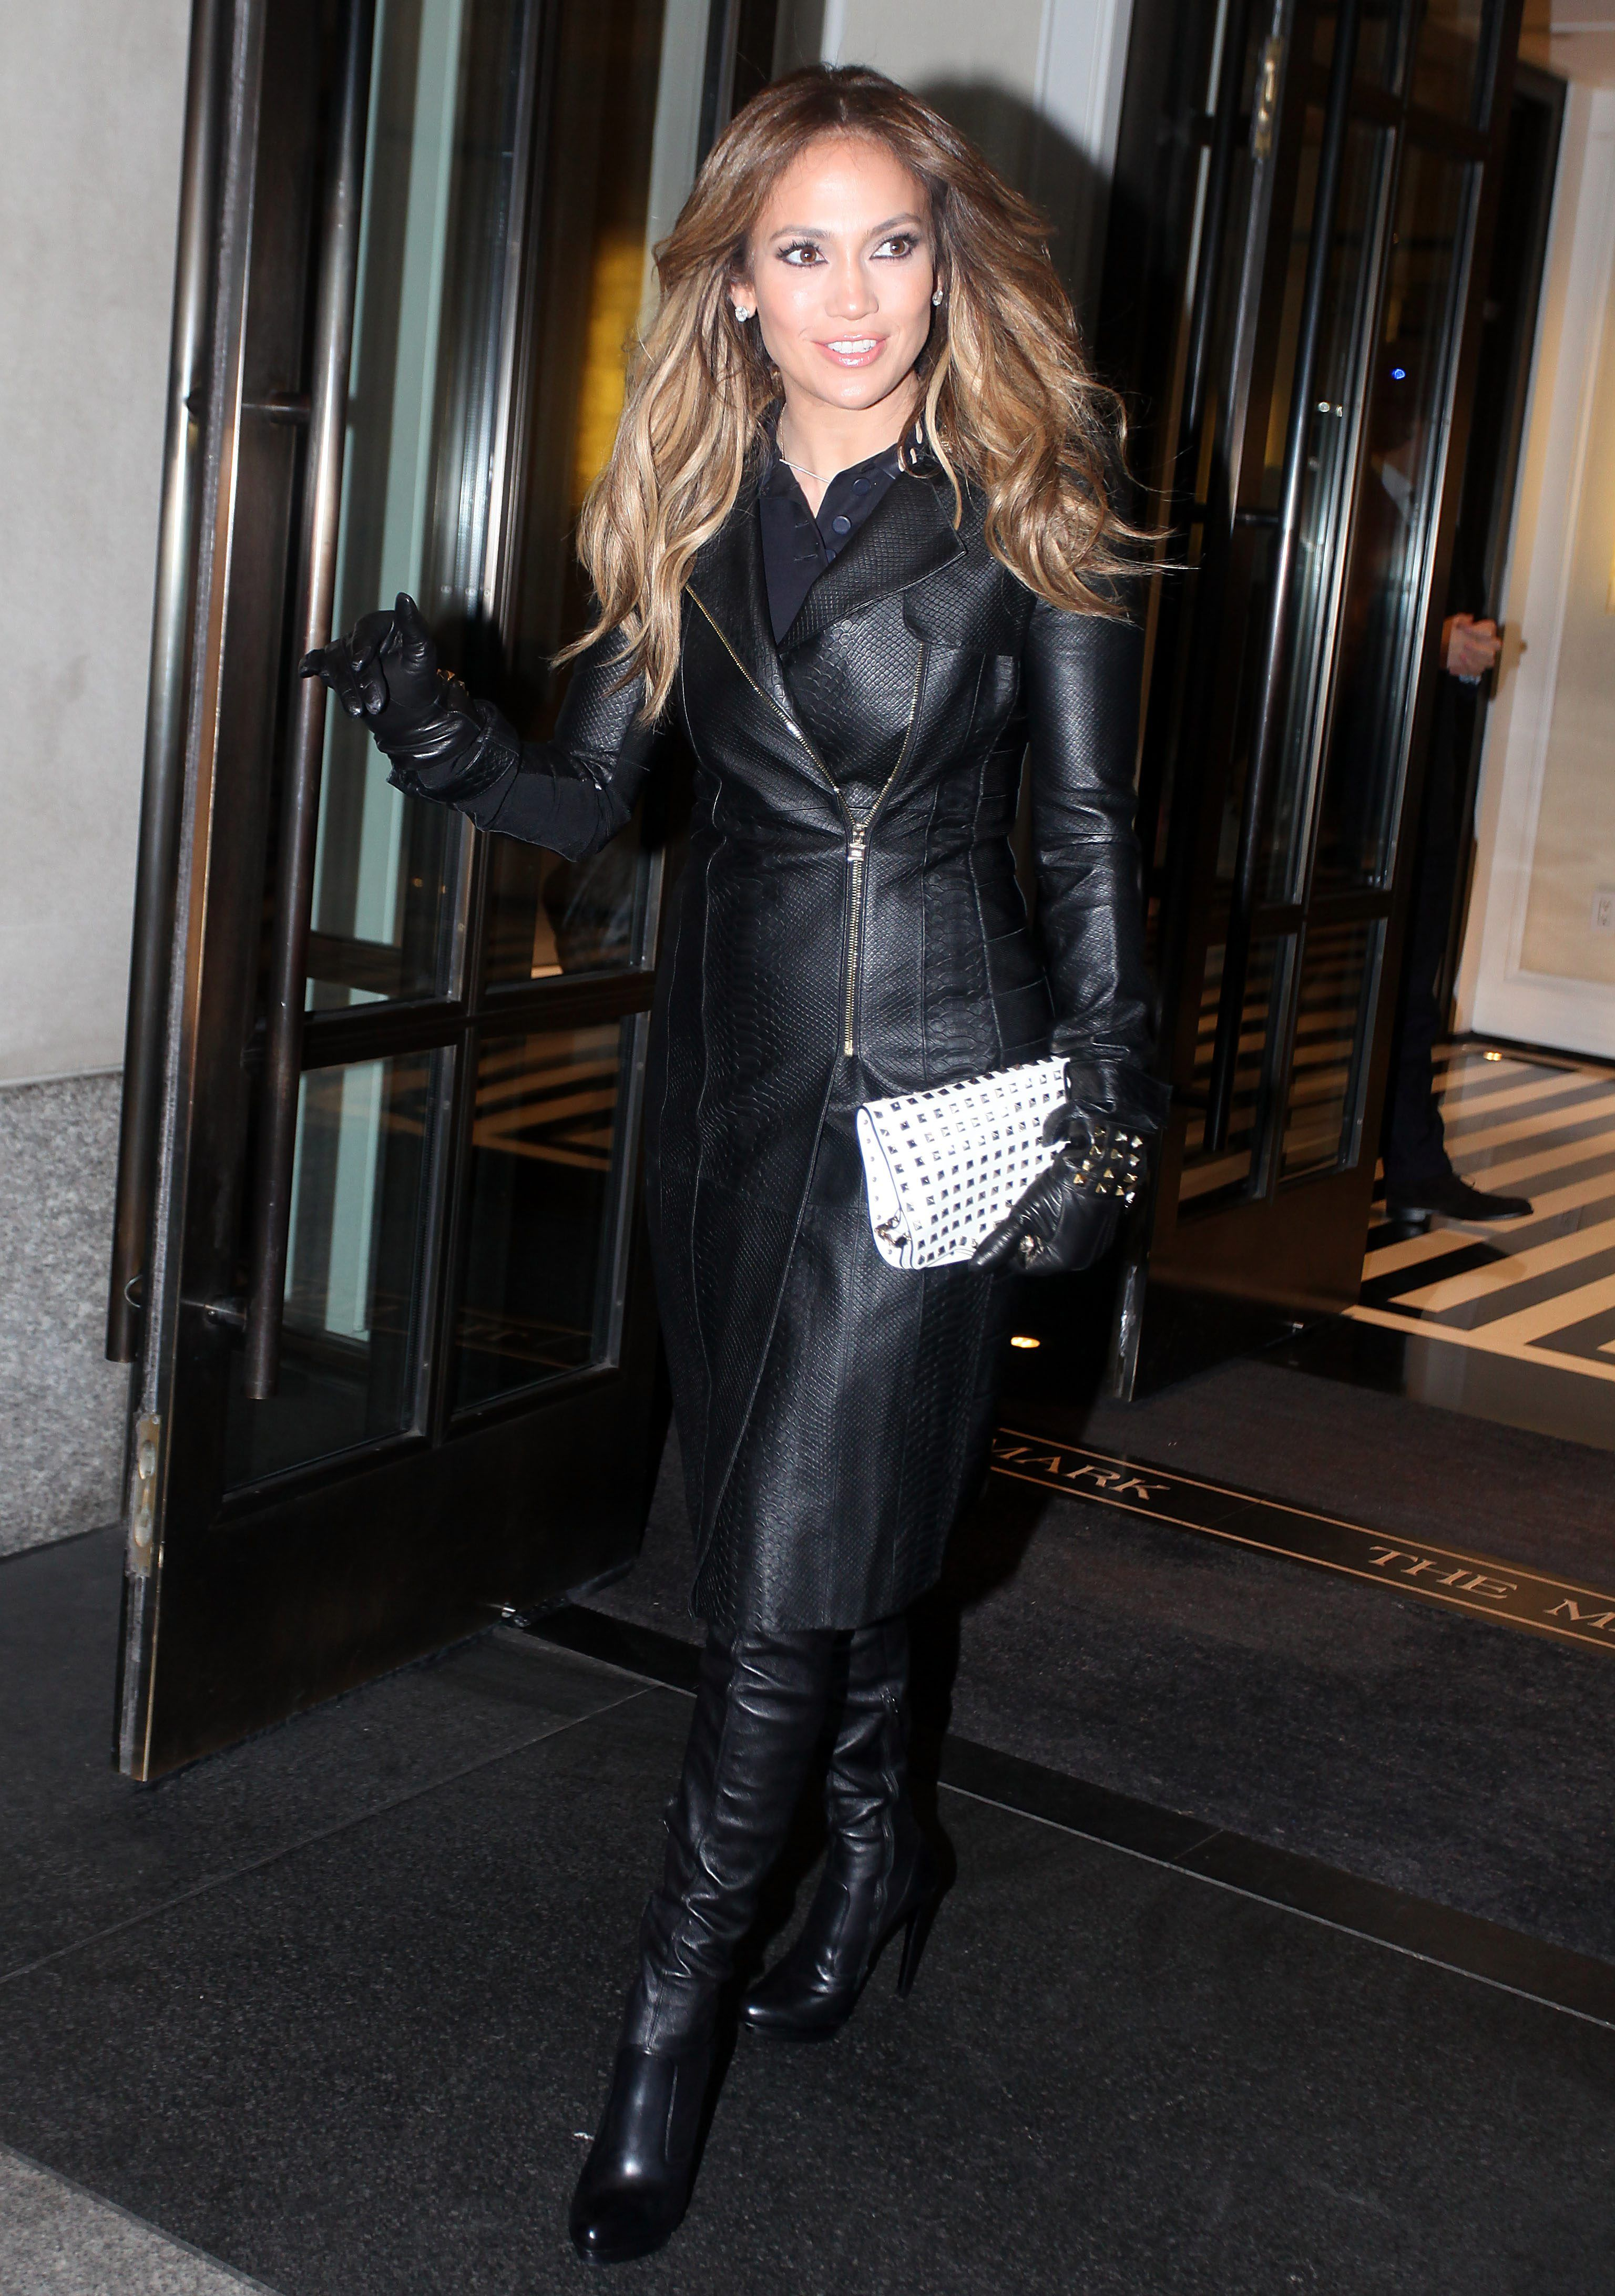 72fe4b3d81c Booted Up  Celebrities in Gloves Pictures Of Jennifer Lopez